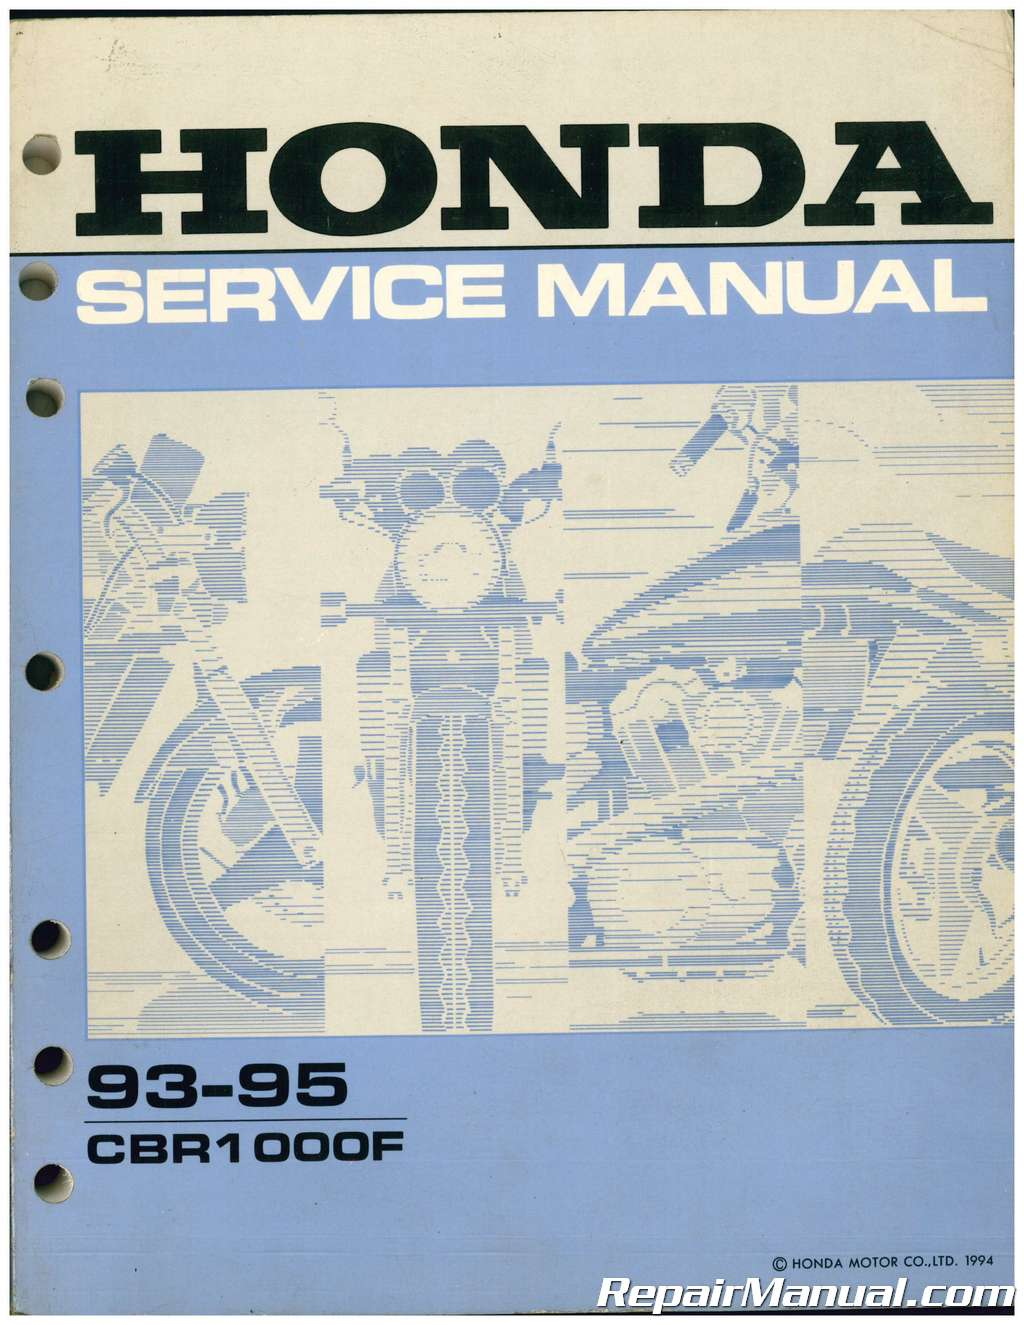 used 1993 1995 honda cbr1000f service manual. Black Bedroom Furniture Sets. Home Design Ideas